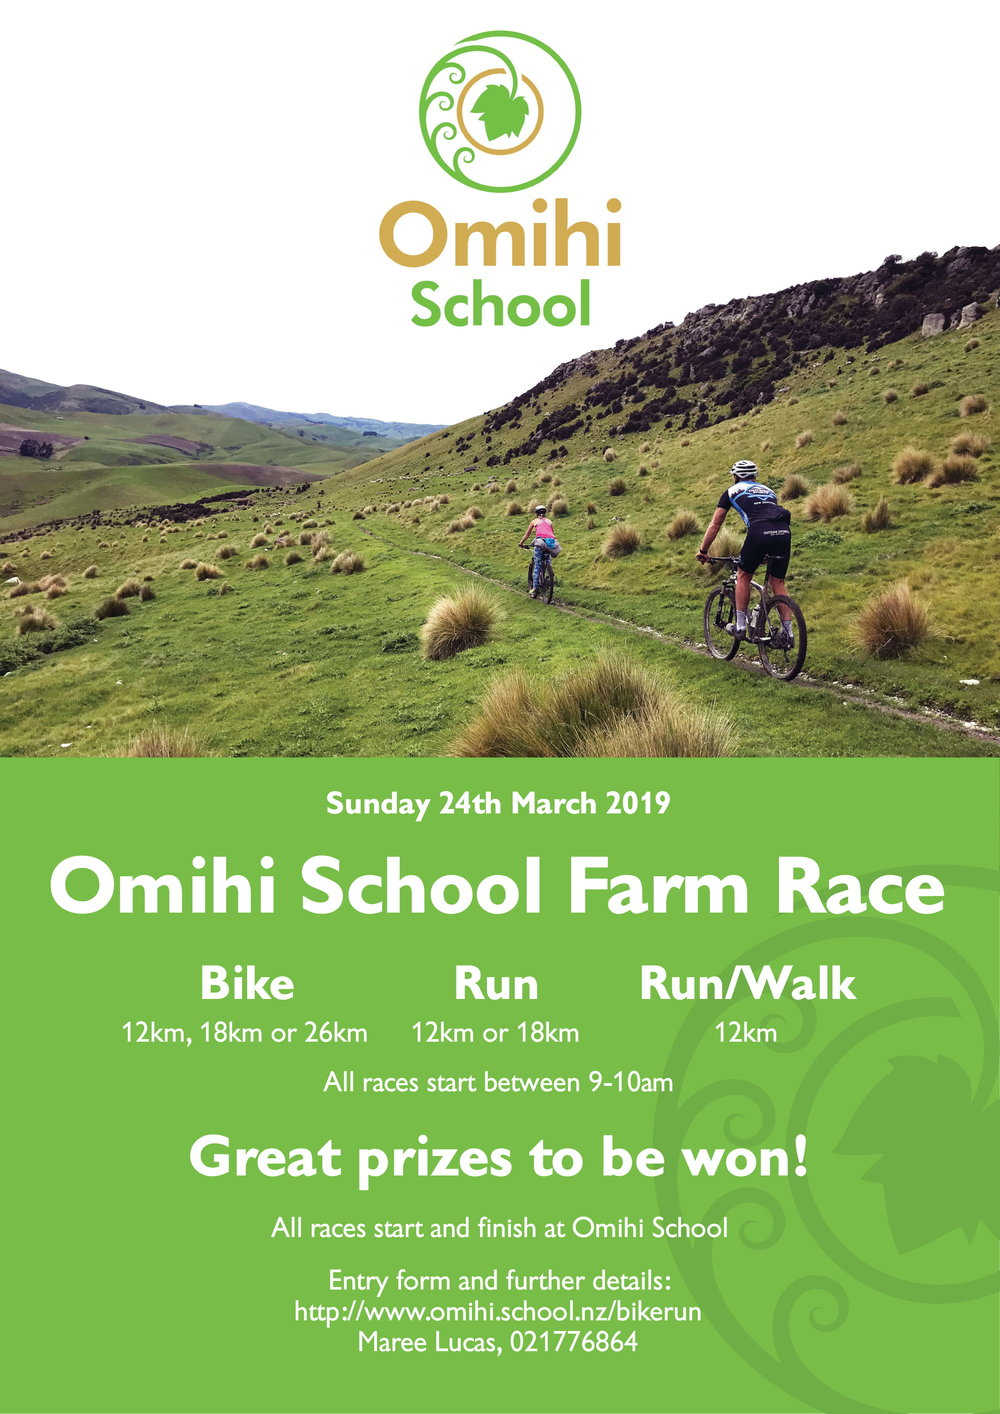 Omihi School Fun Run Bike Walk Poster WEB-1.jpg